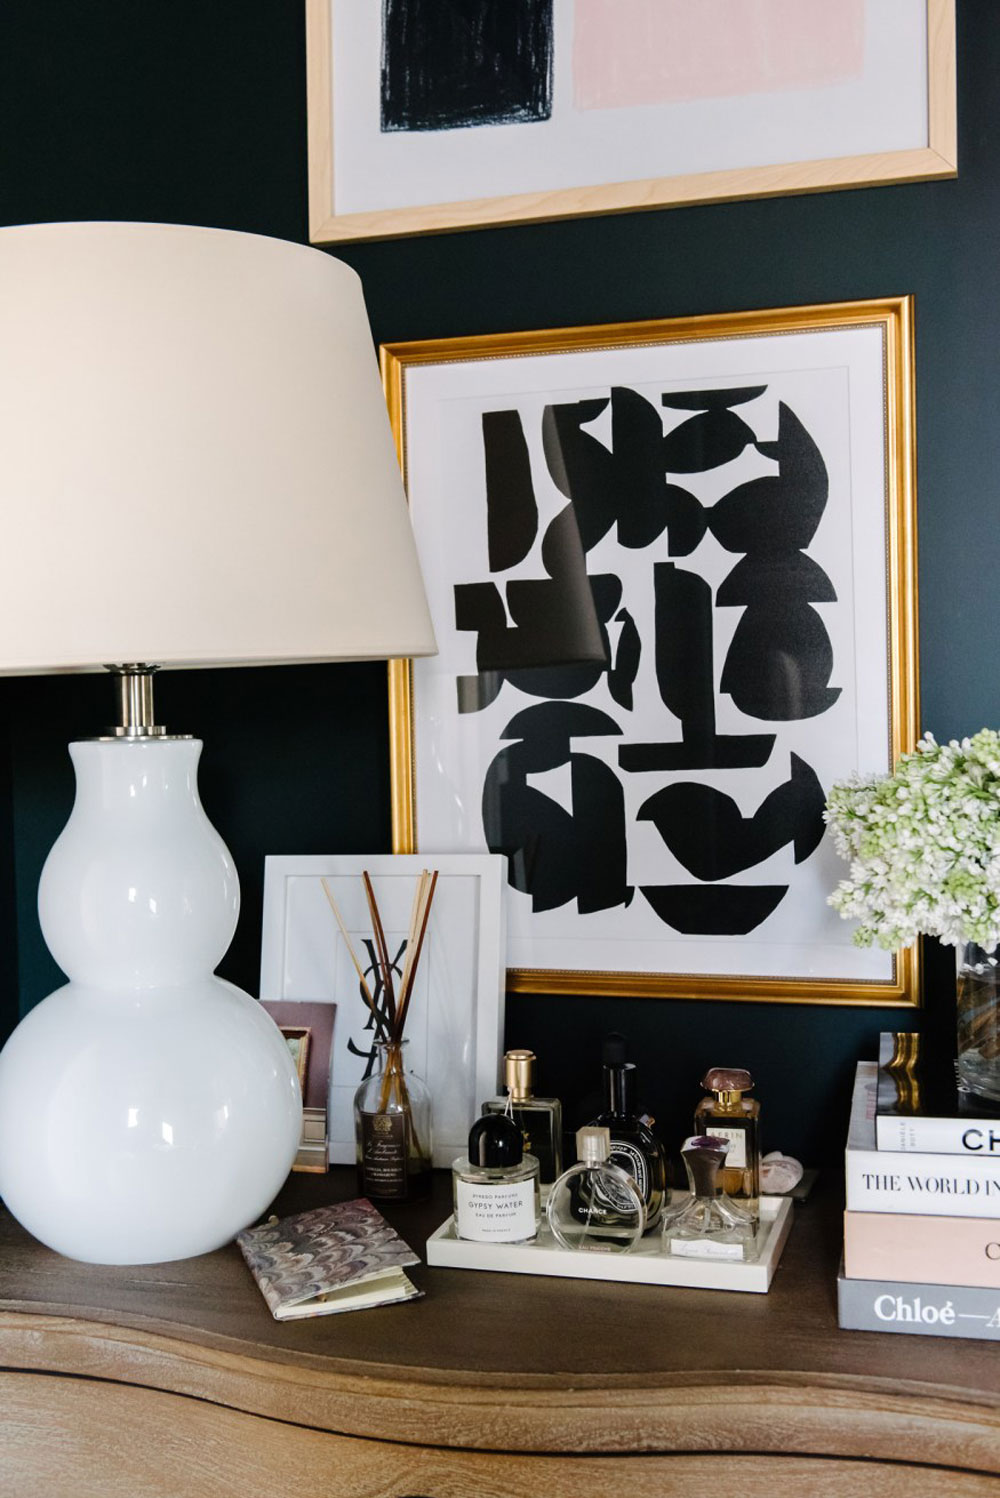 How stunning is this glamorous 2 bedroom New York City apartment? Located in the West Village, this city pad belongs to fashion and travel blogger, Kat Tanita, founder of With Love From Kat. Today I'm taking you on a house tour and showing you 9 easy ways to recreate this glamorous interior design yourself on a budget. Click through to discover more.